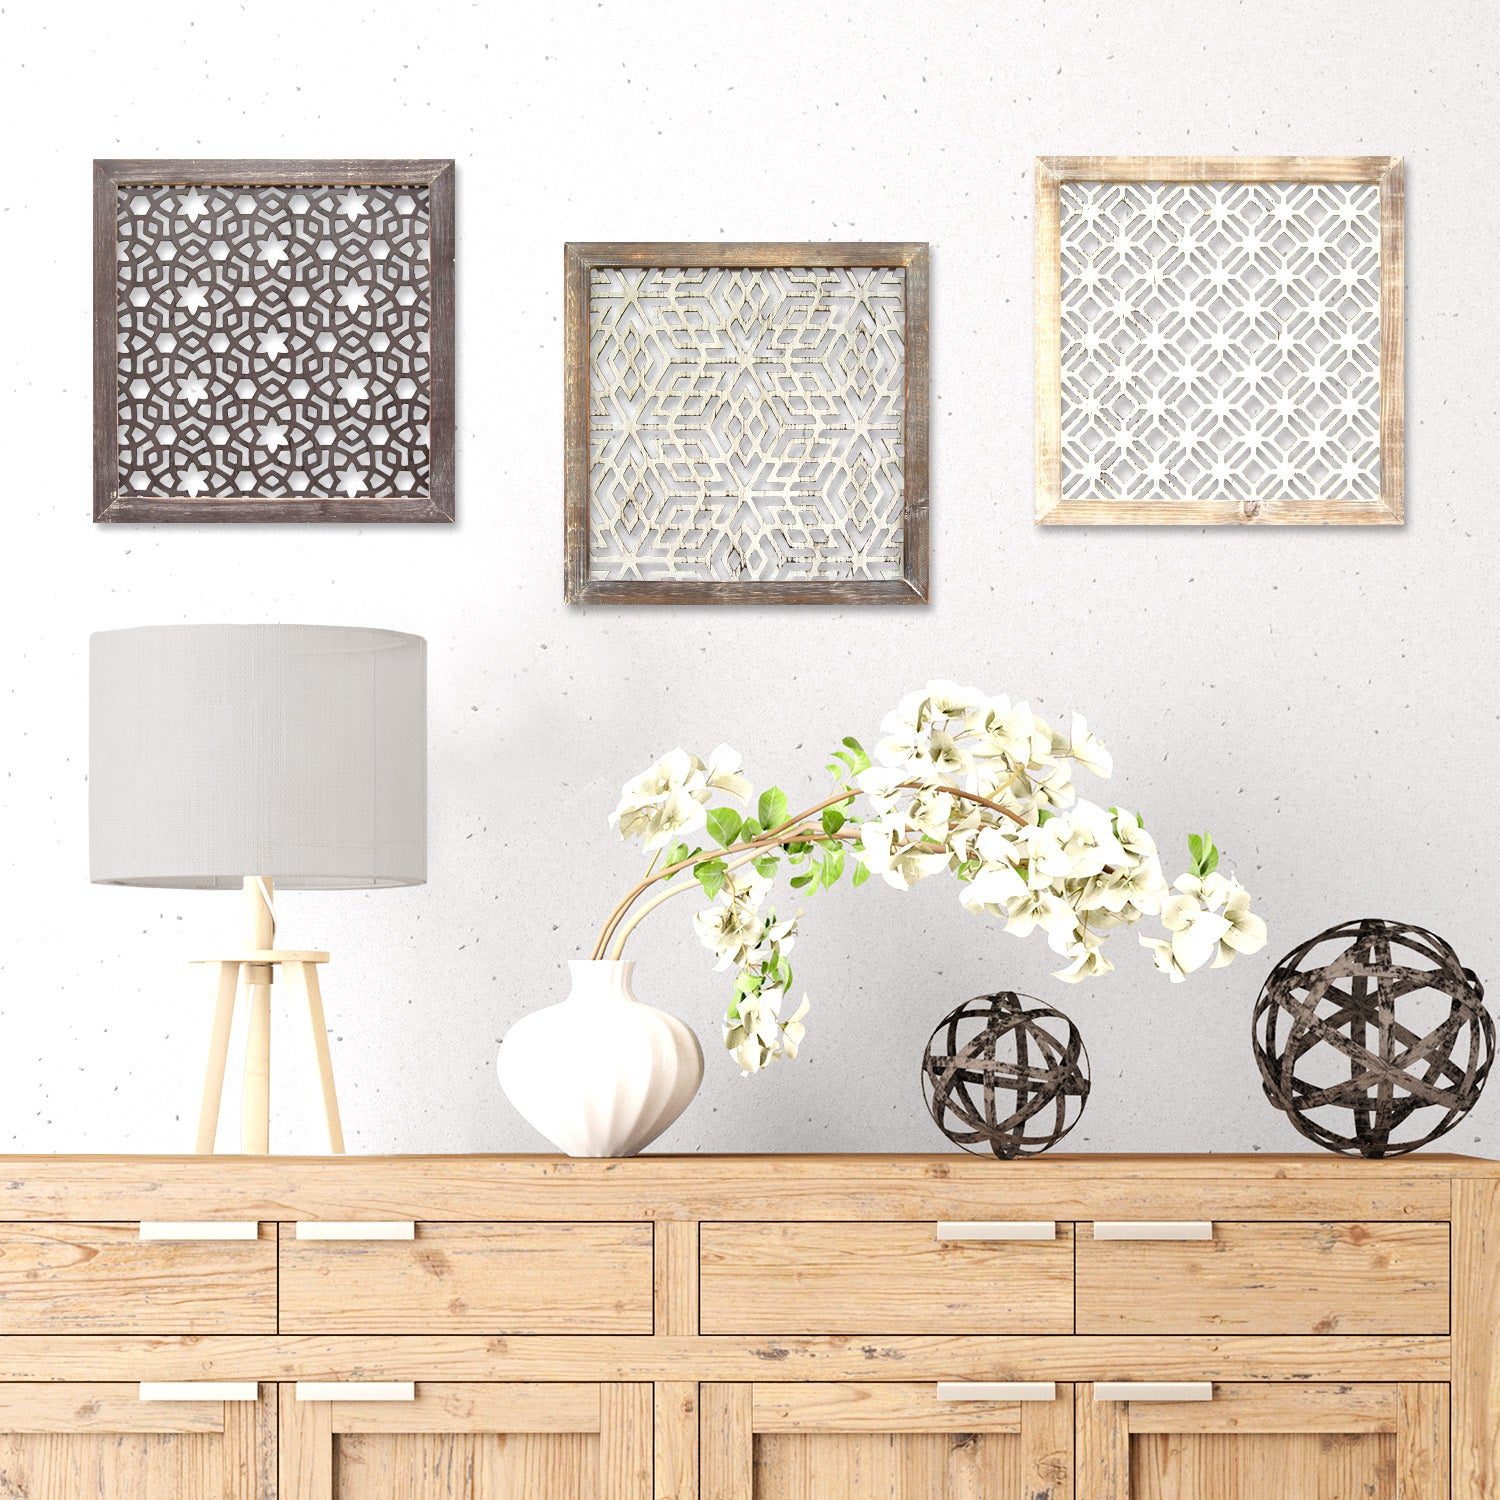 Stratton Home Decor Distressed Grey Wood Framed Laser Cut Metal Wall Art    Free Shipping On Orders Over $45   Overstock   19623638